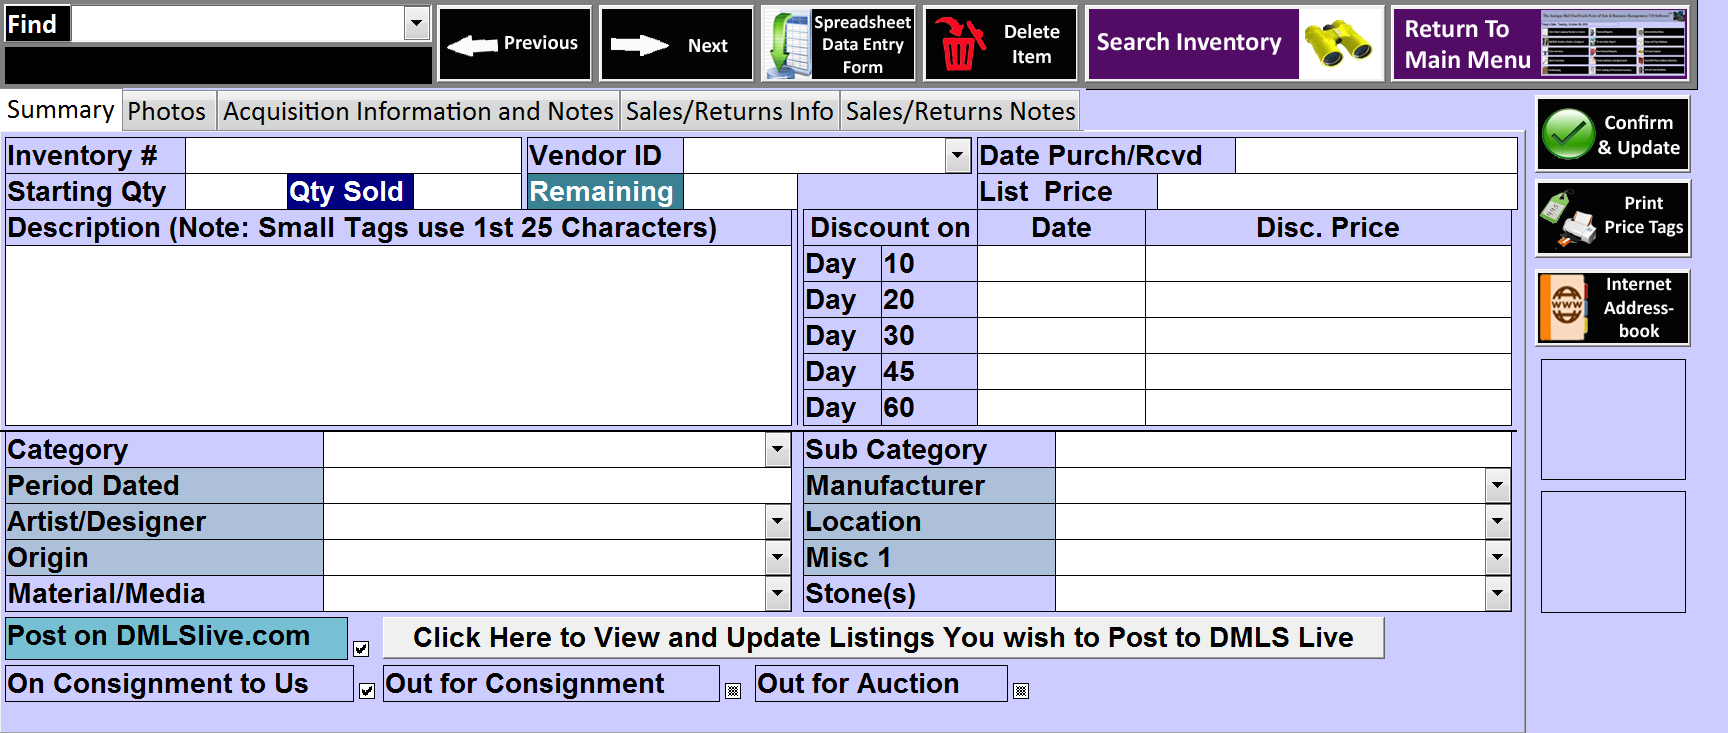 Antique Mall Point Of Sale Software Search Menu And Form